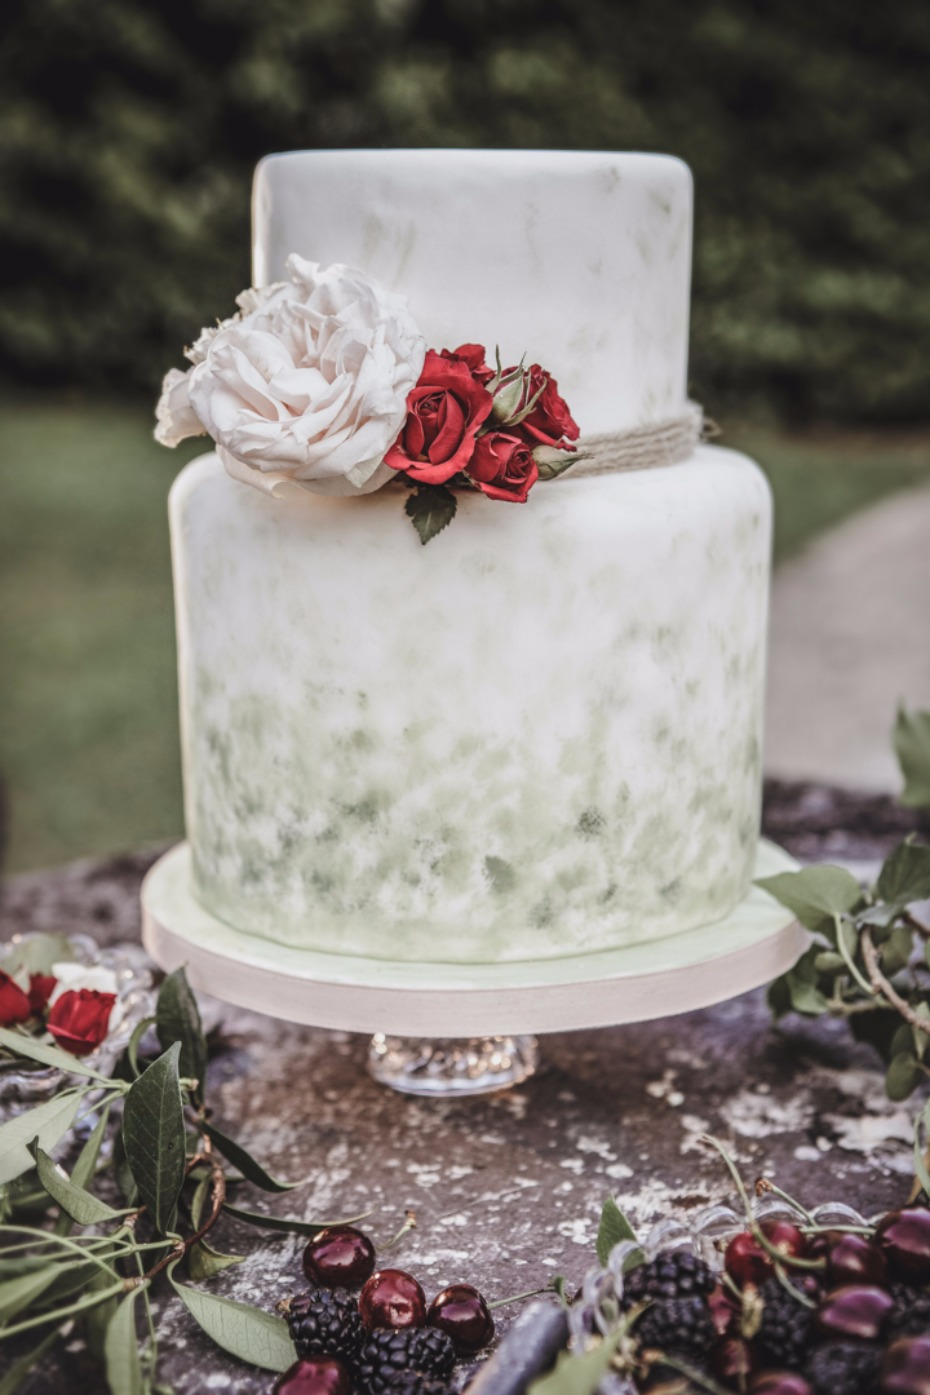 rose garden wedding cake idea